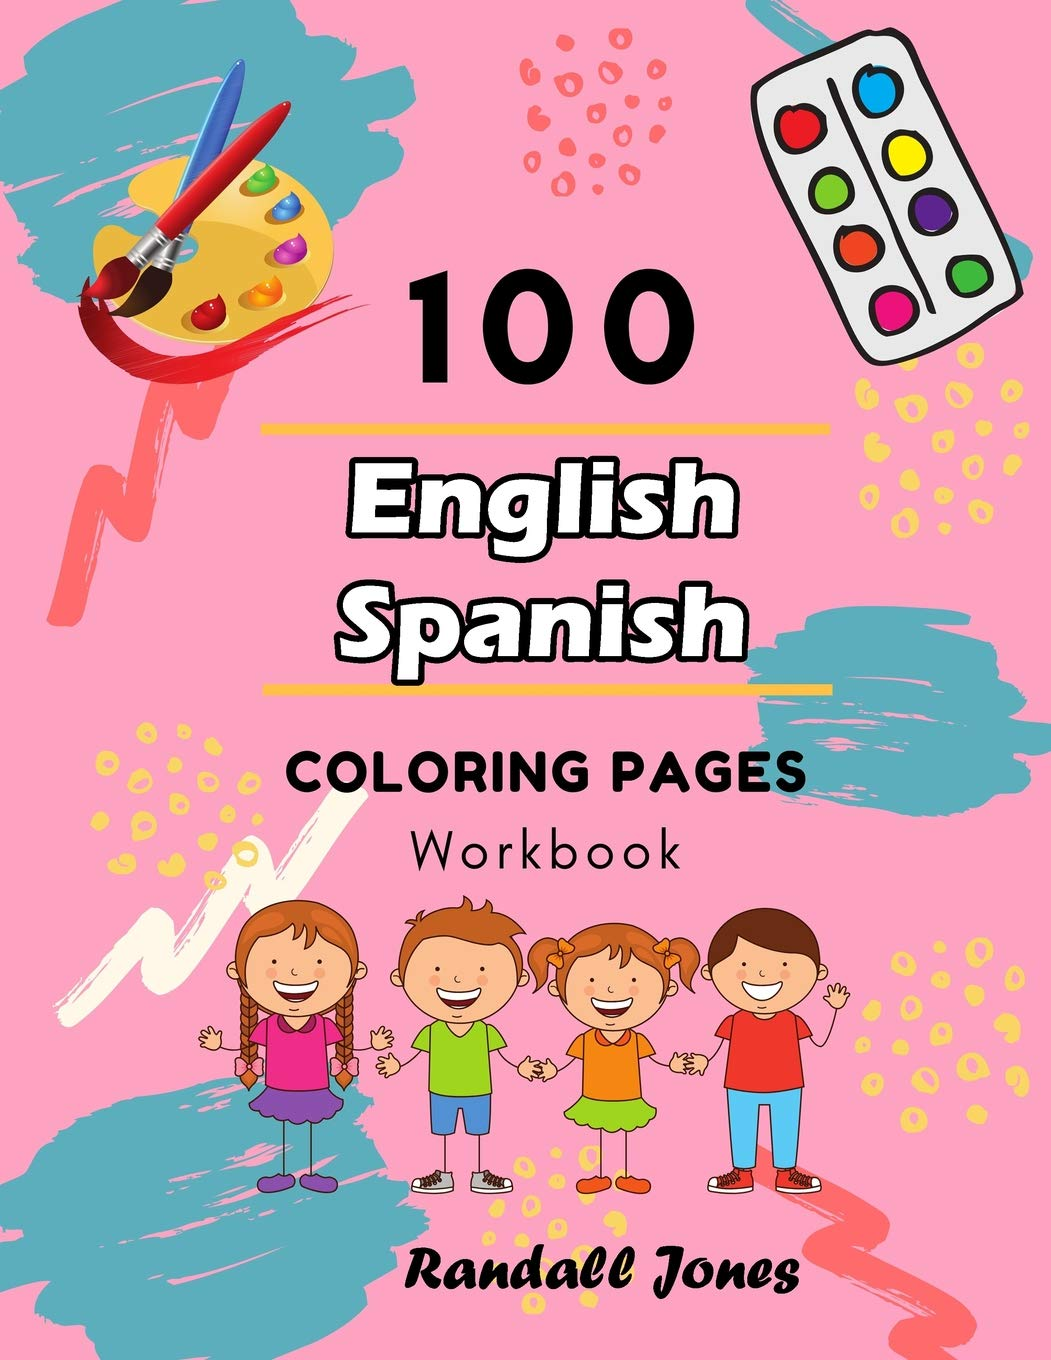 Free Spanish Coloring Pages & Activities | Dibujos para colorear ... | 1360x1051